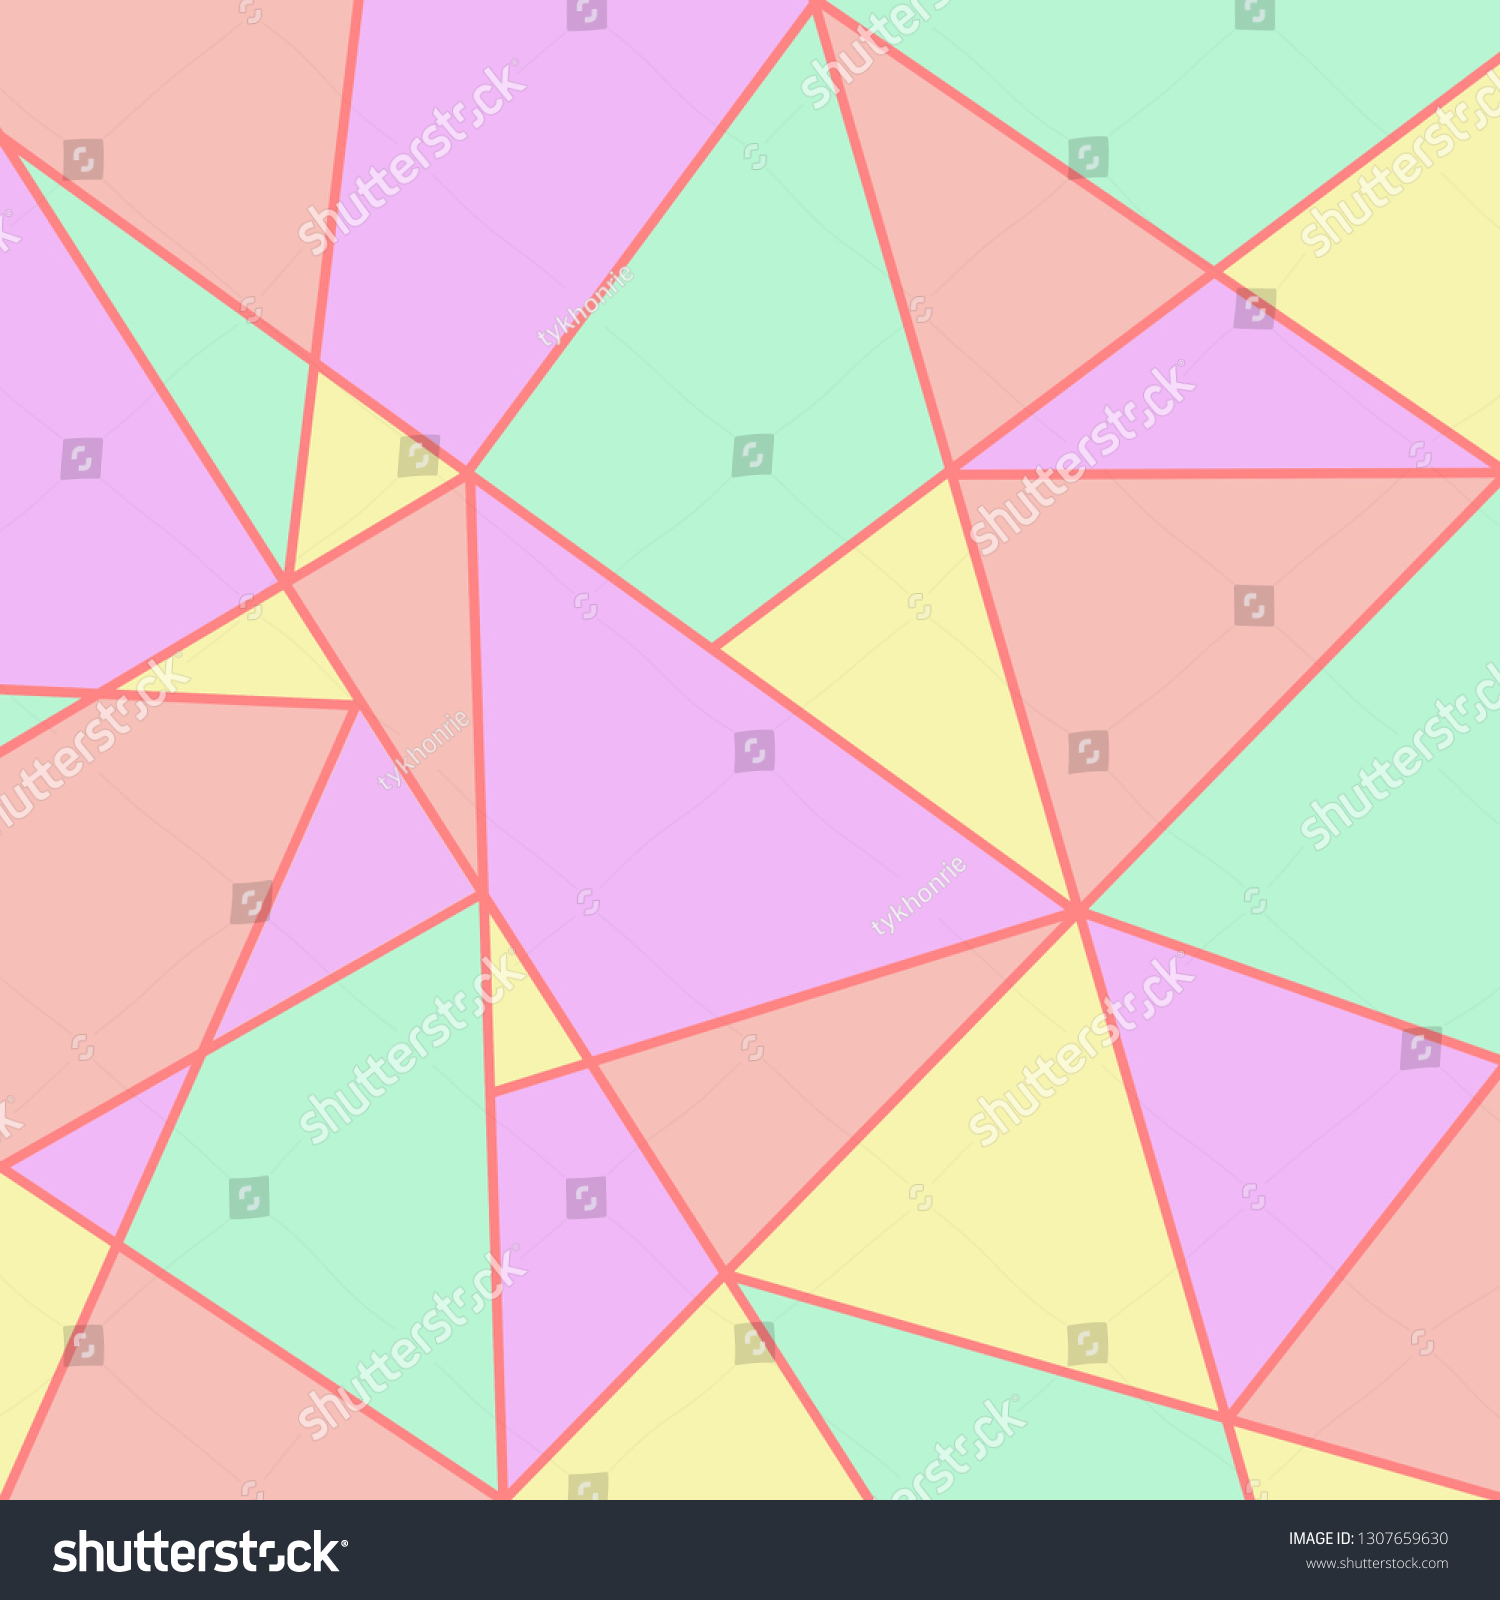 stock-photo-cute-light-triangle-abstract